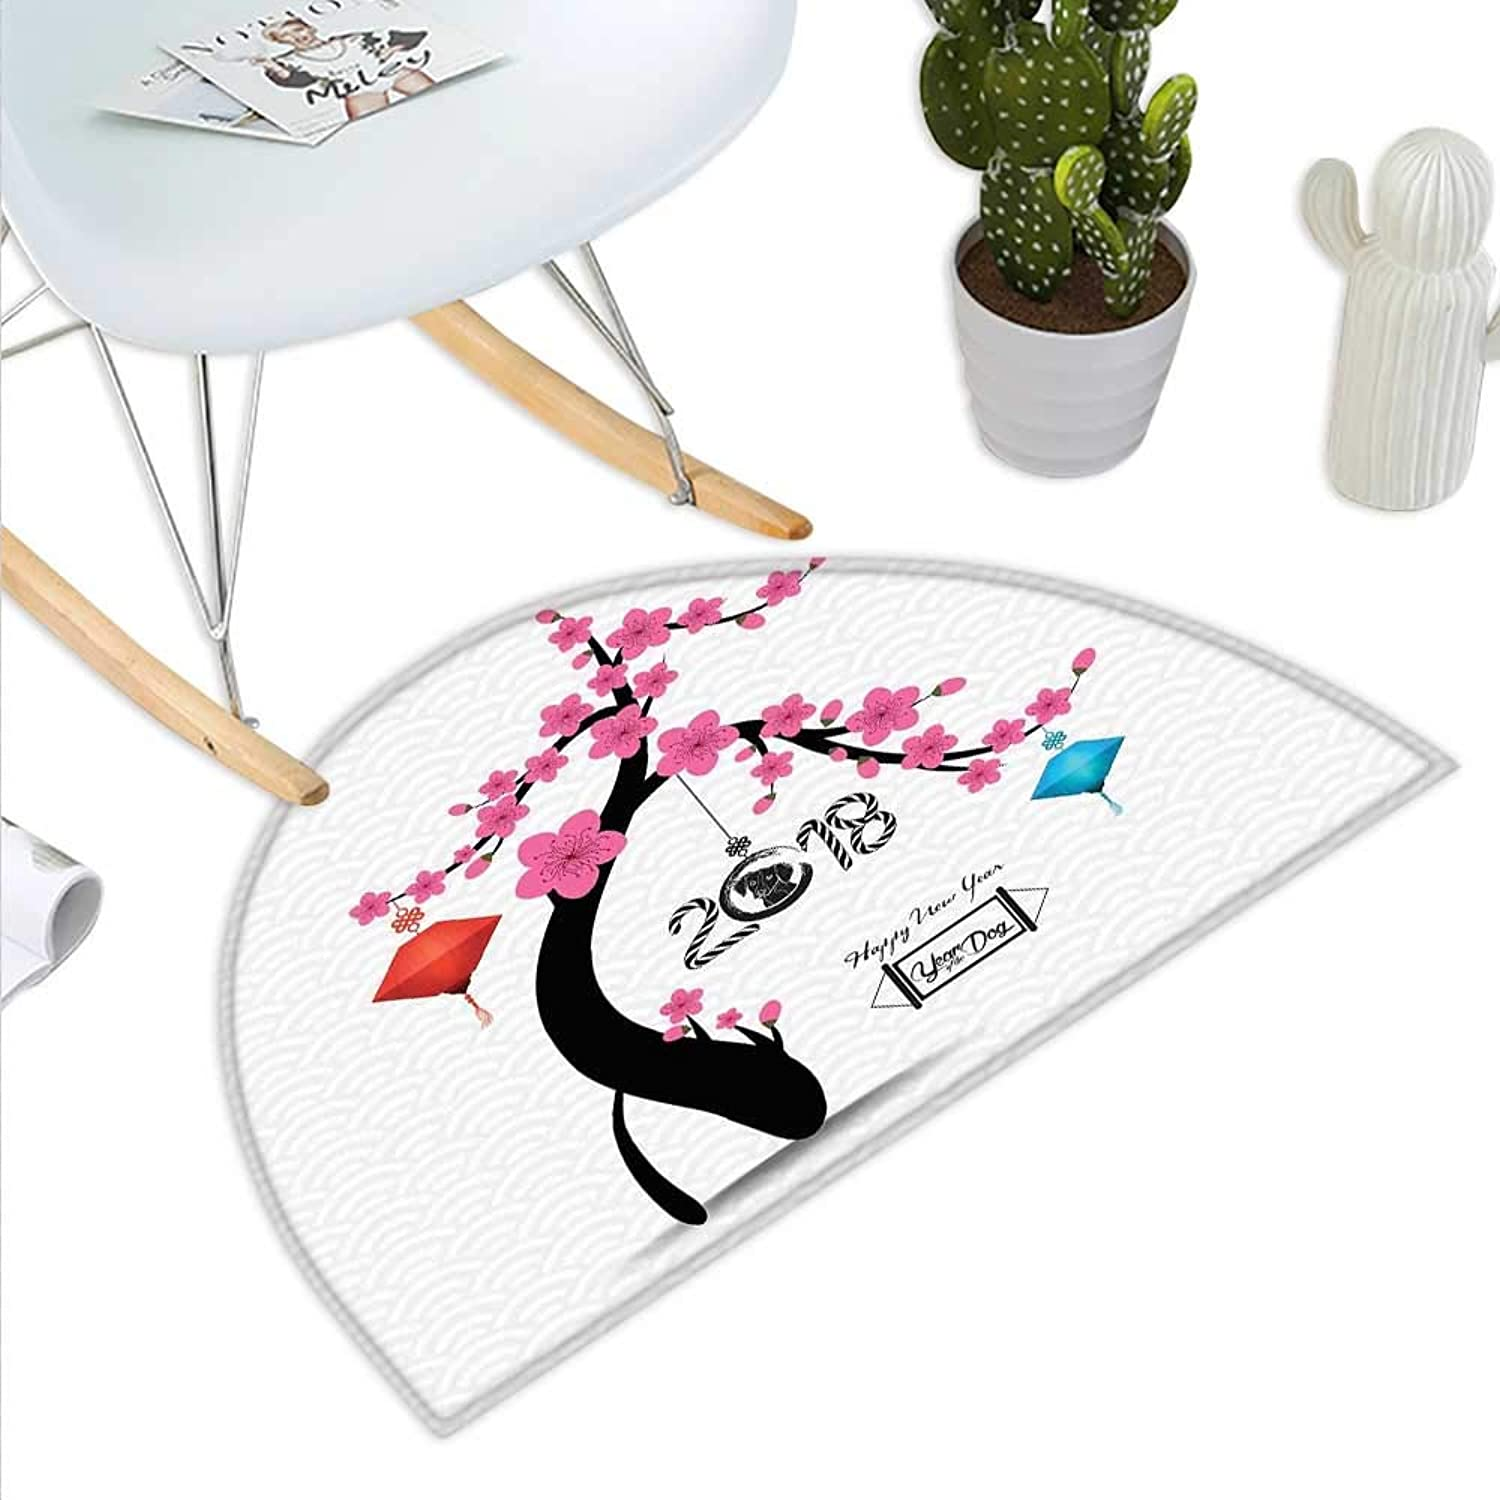 Year of The Dog Semicircle Doormat Flourishing Cherry Blossom Tree with Oriental Elements Abstract Nature Halfmoon doormats H 23.6  xD 35.4  Multicolor